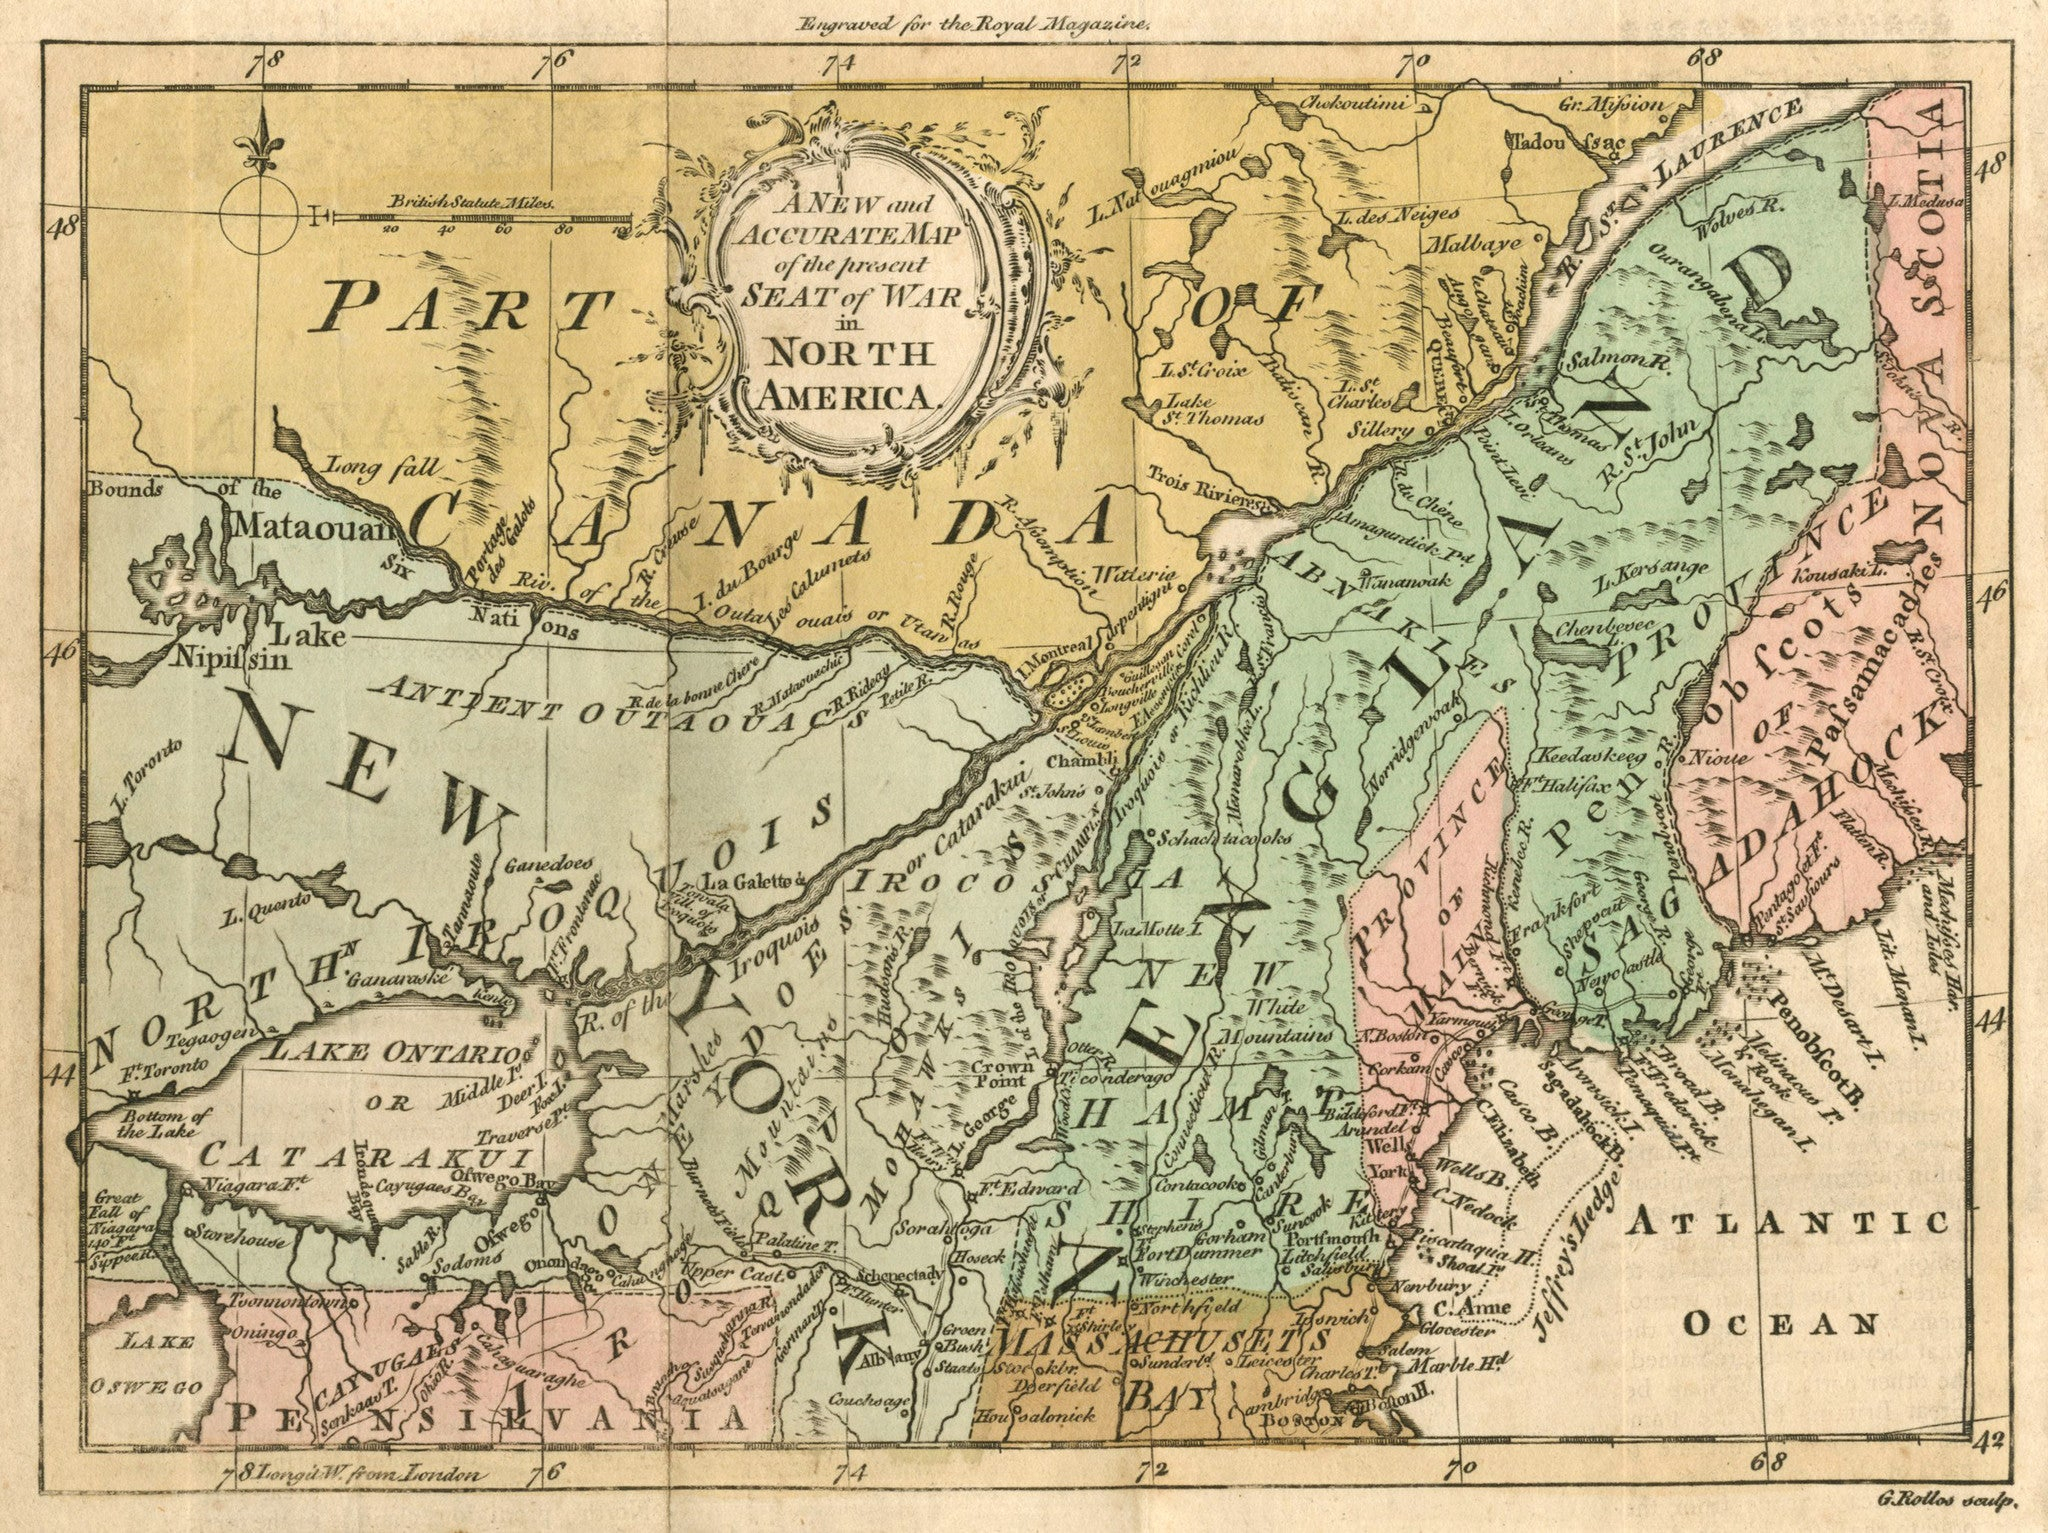 1759 A New and Accurate Map of the Present Seat of War in North America